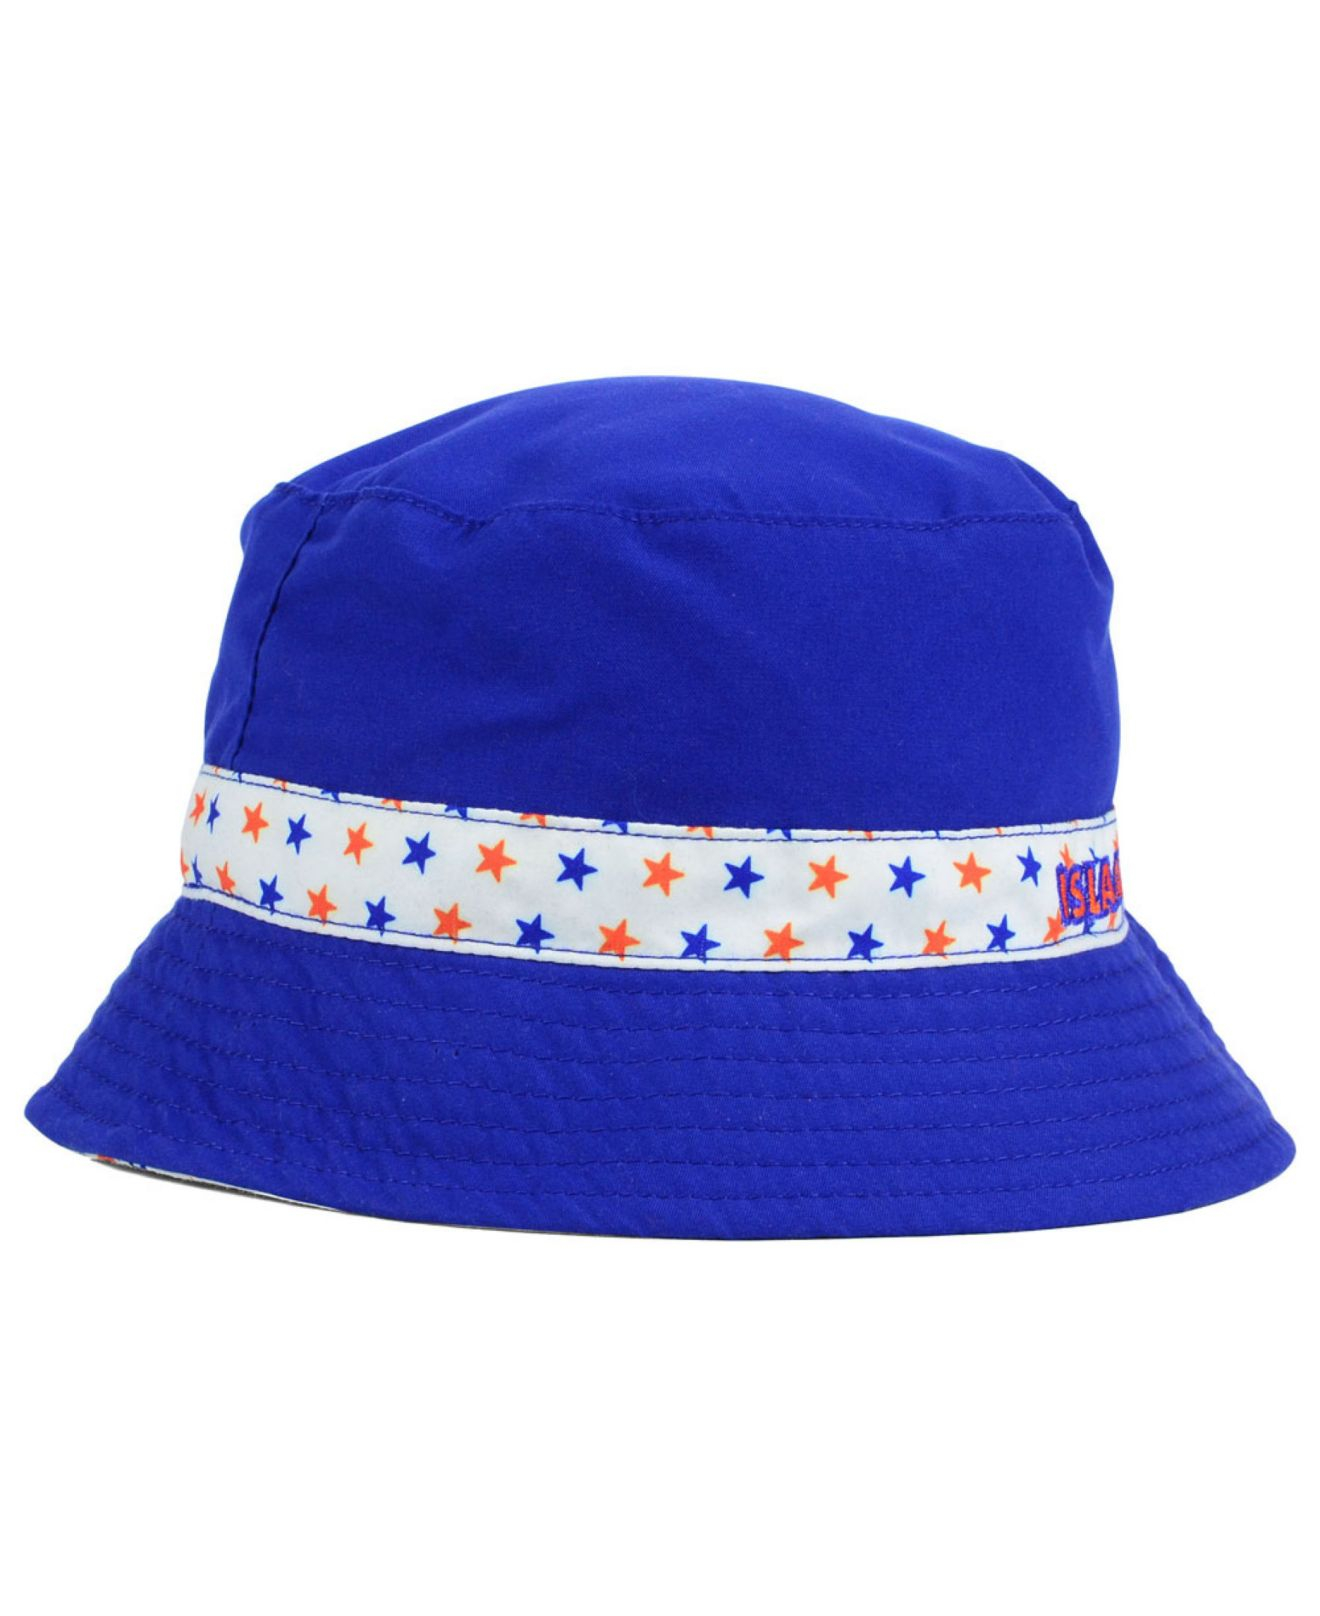 92a912fe7a3 ... spain lyst ktz kids new york islanders reversible bucket hat in blue  206fa f900a